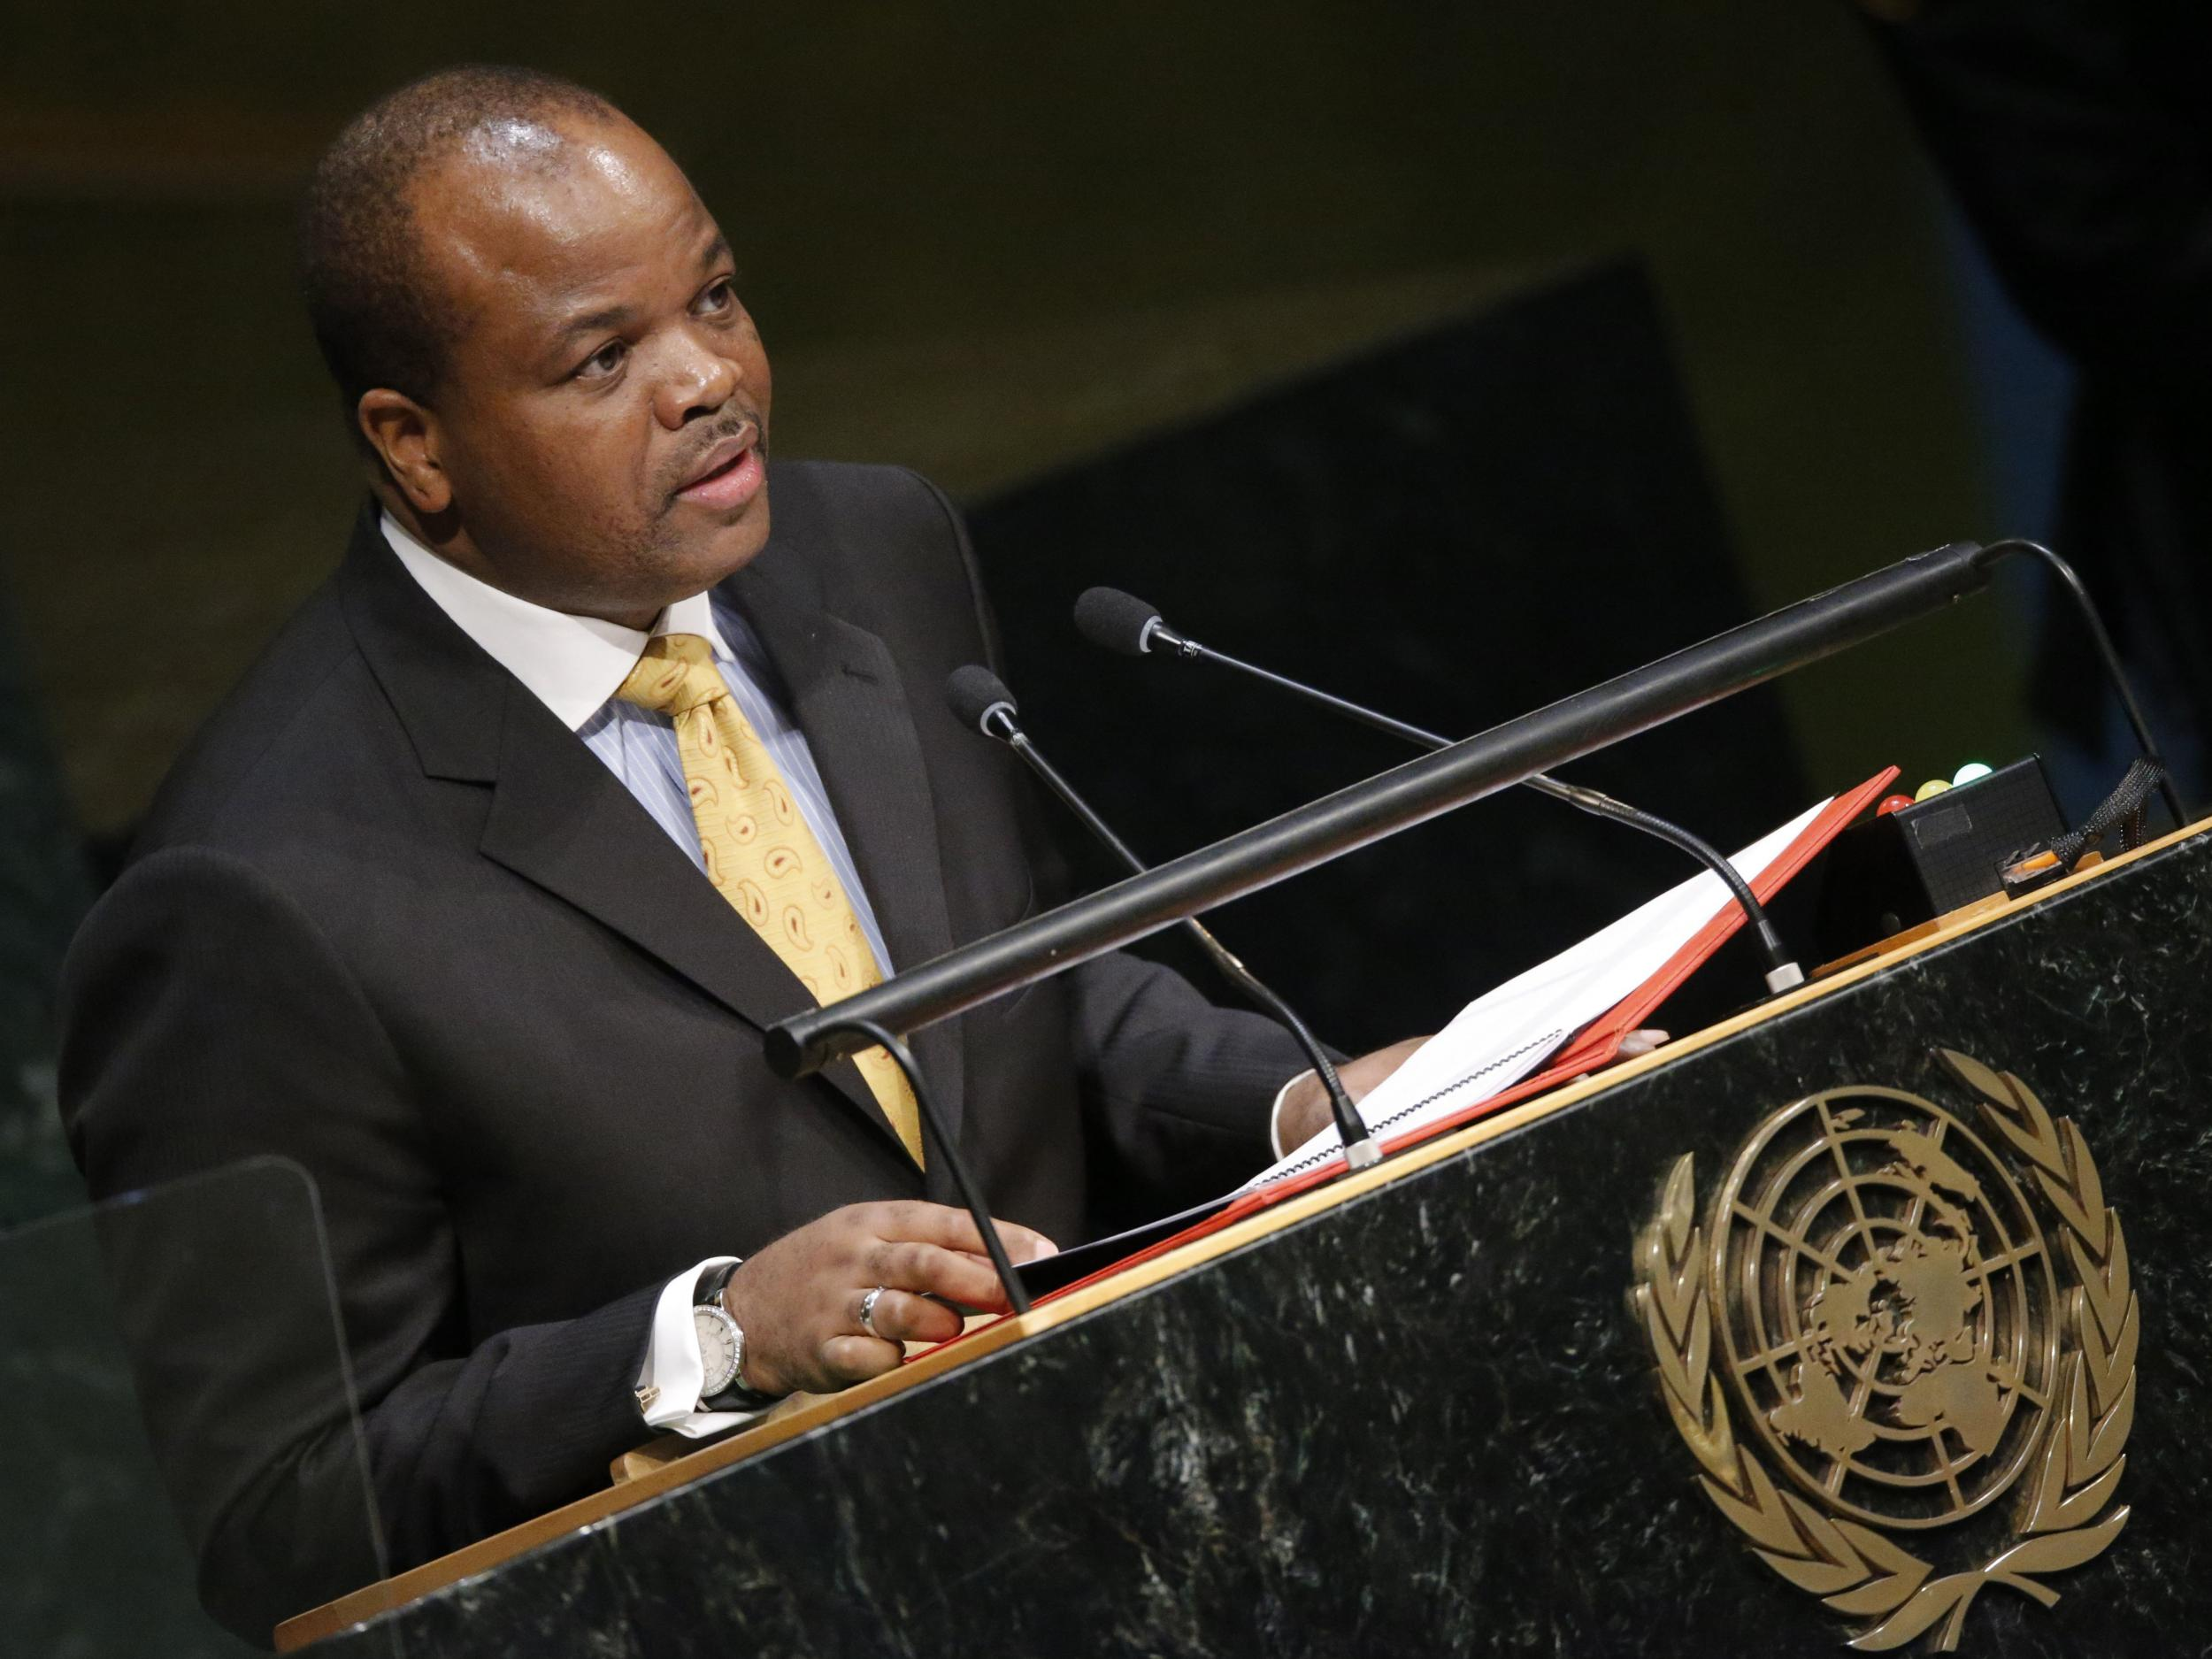 Swaziland king officially renames country Kingdom of